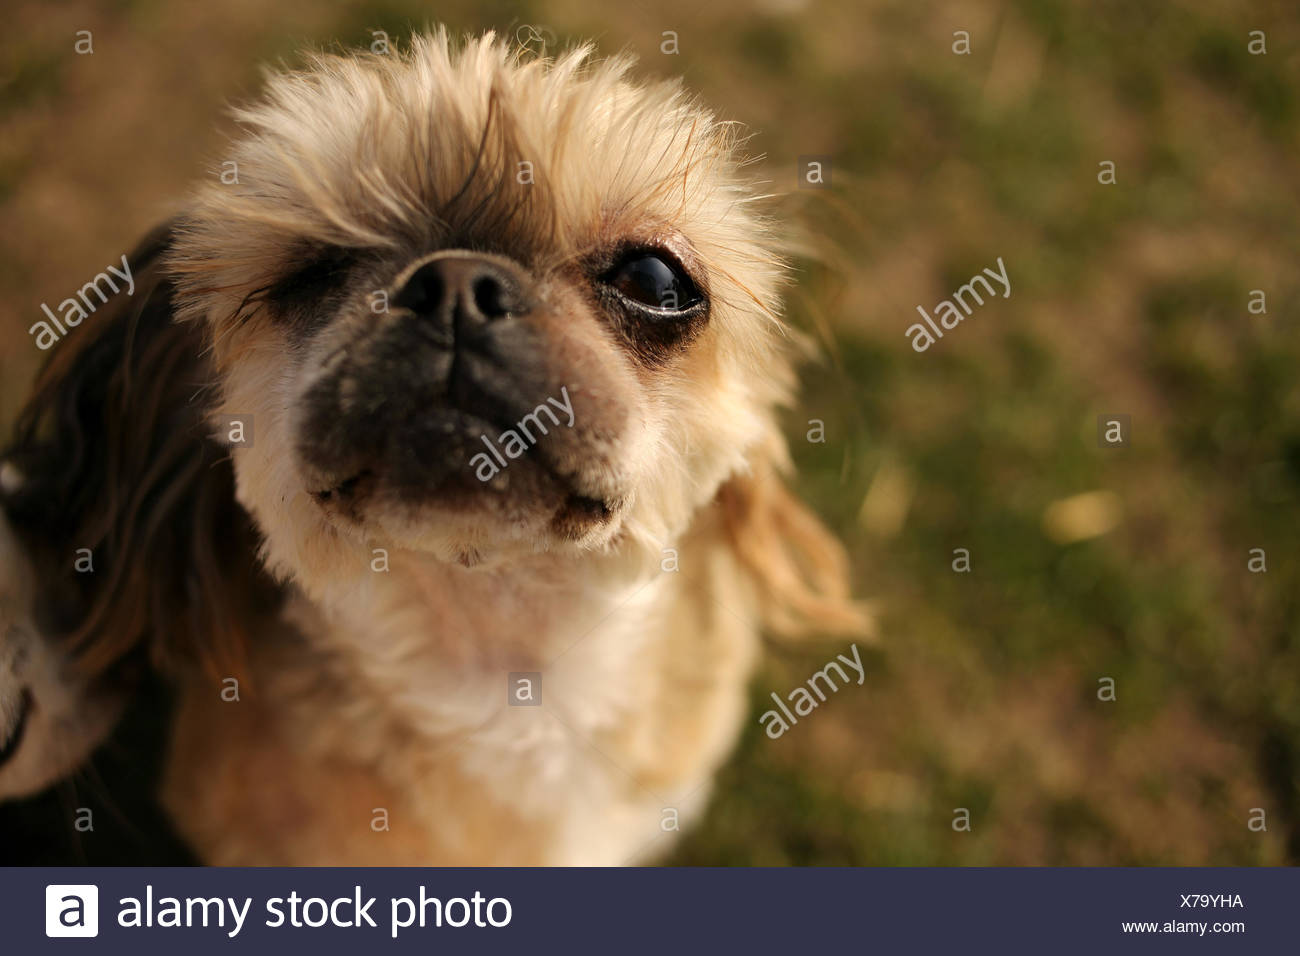 Portrait Of A Shih Tzu Rescue Dog With One Eye Stock Photo